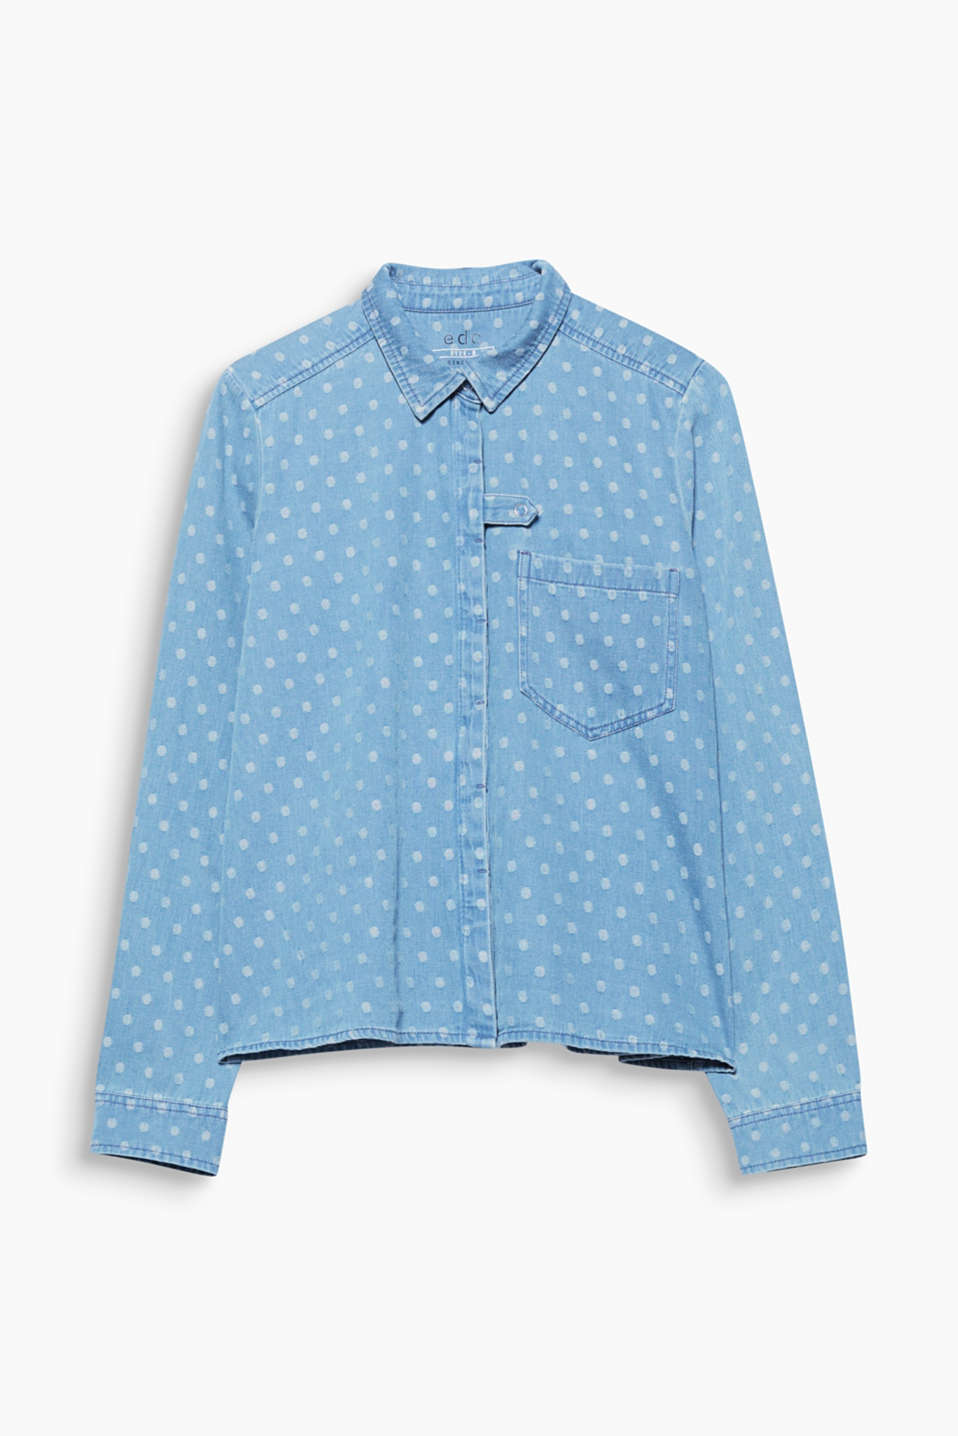 This blouse in a light garment wash cotton denim enchants with a charming woven polka dot pattern.